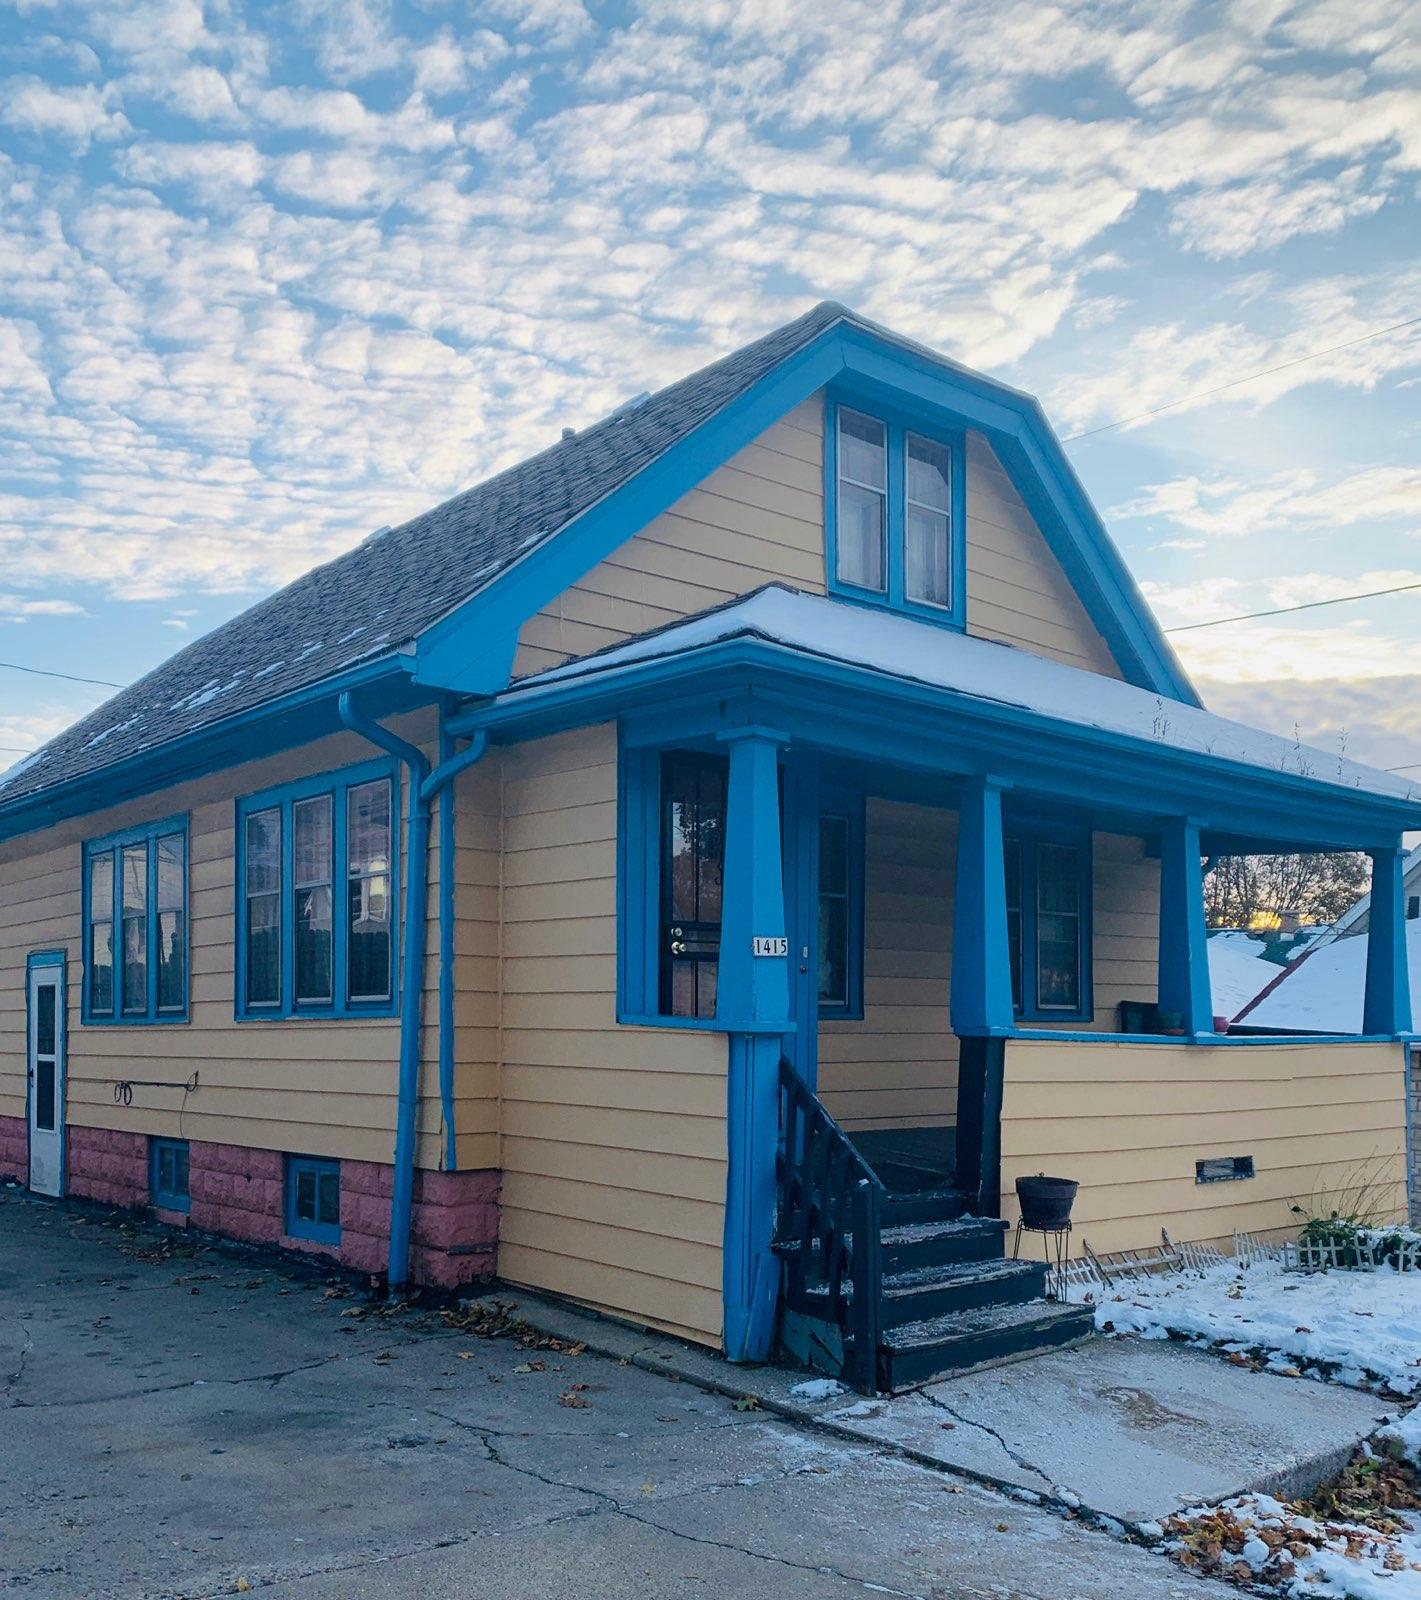 3 Bedroom Single Family Homes For Rent In Milwaukee ...